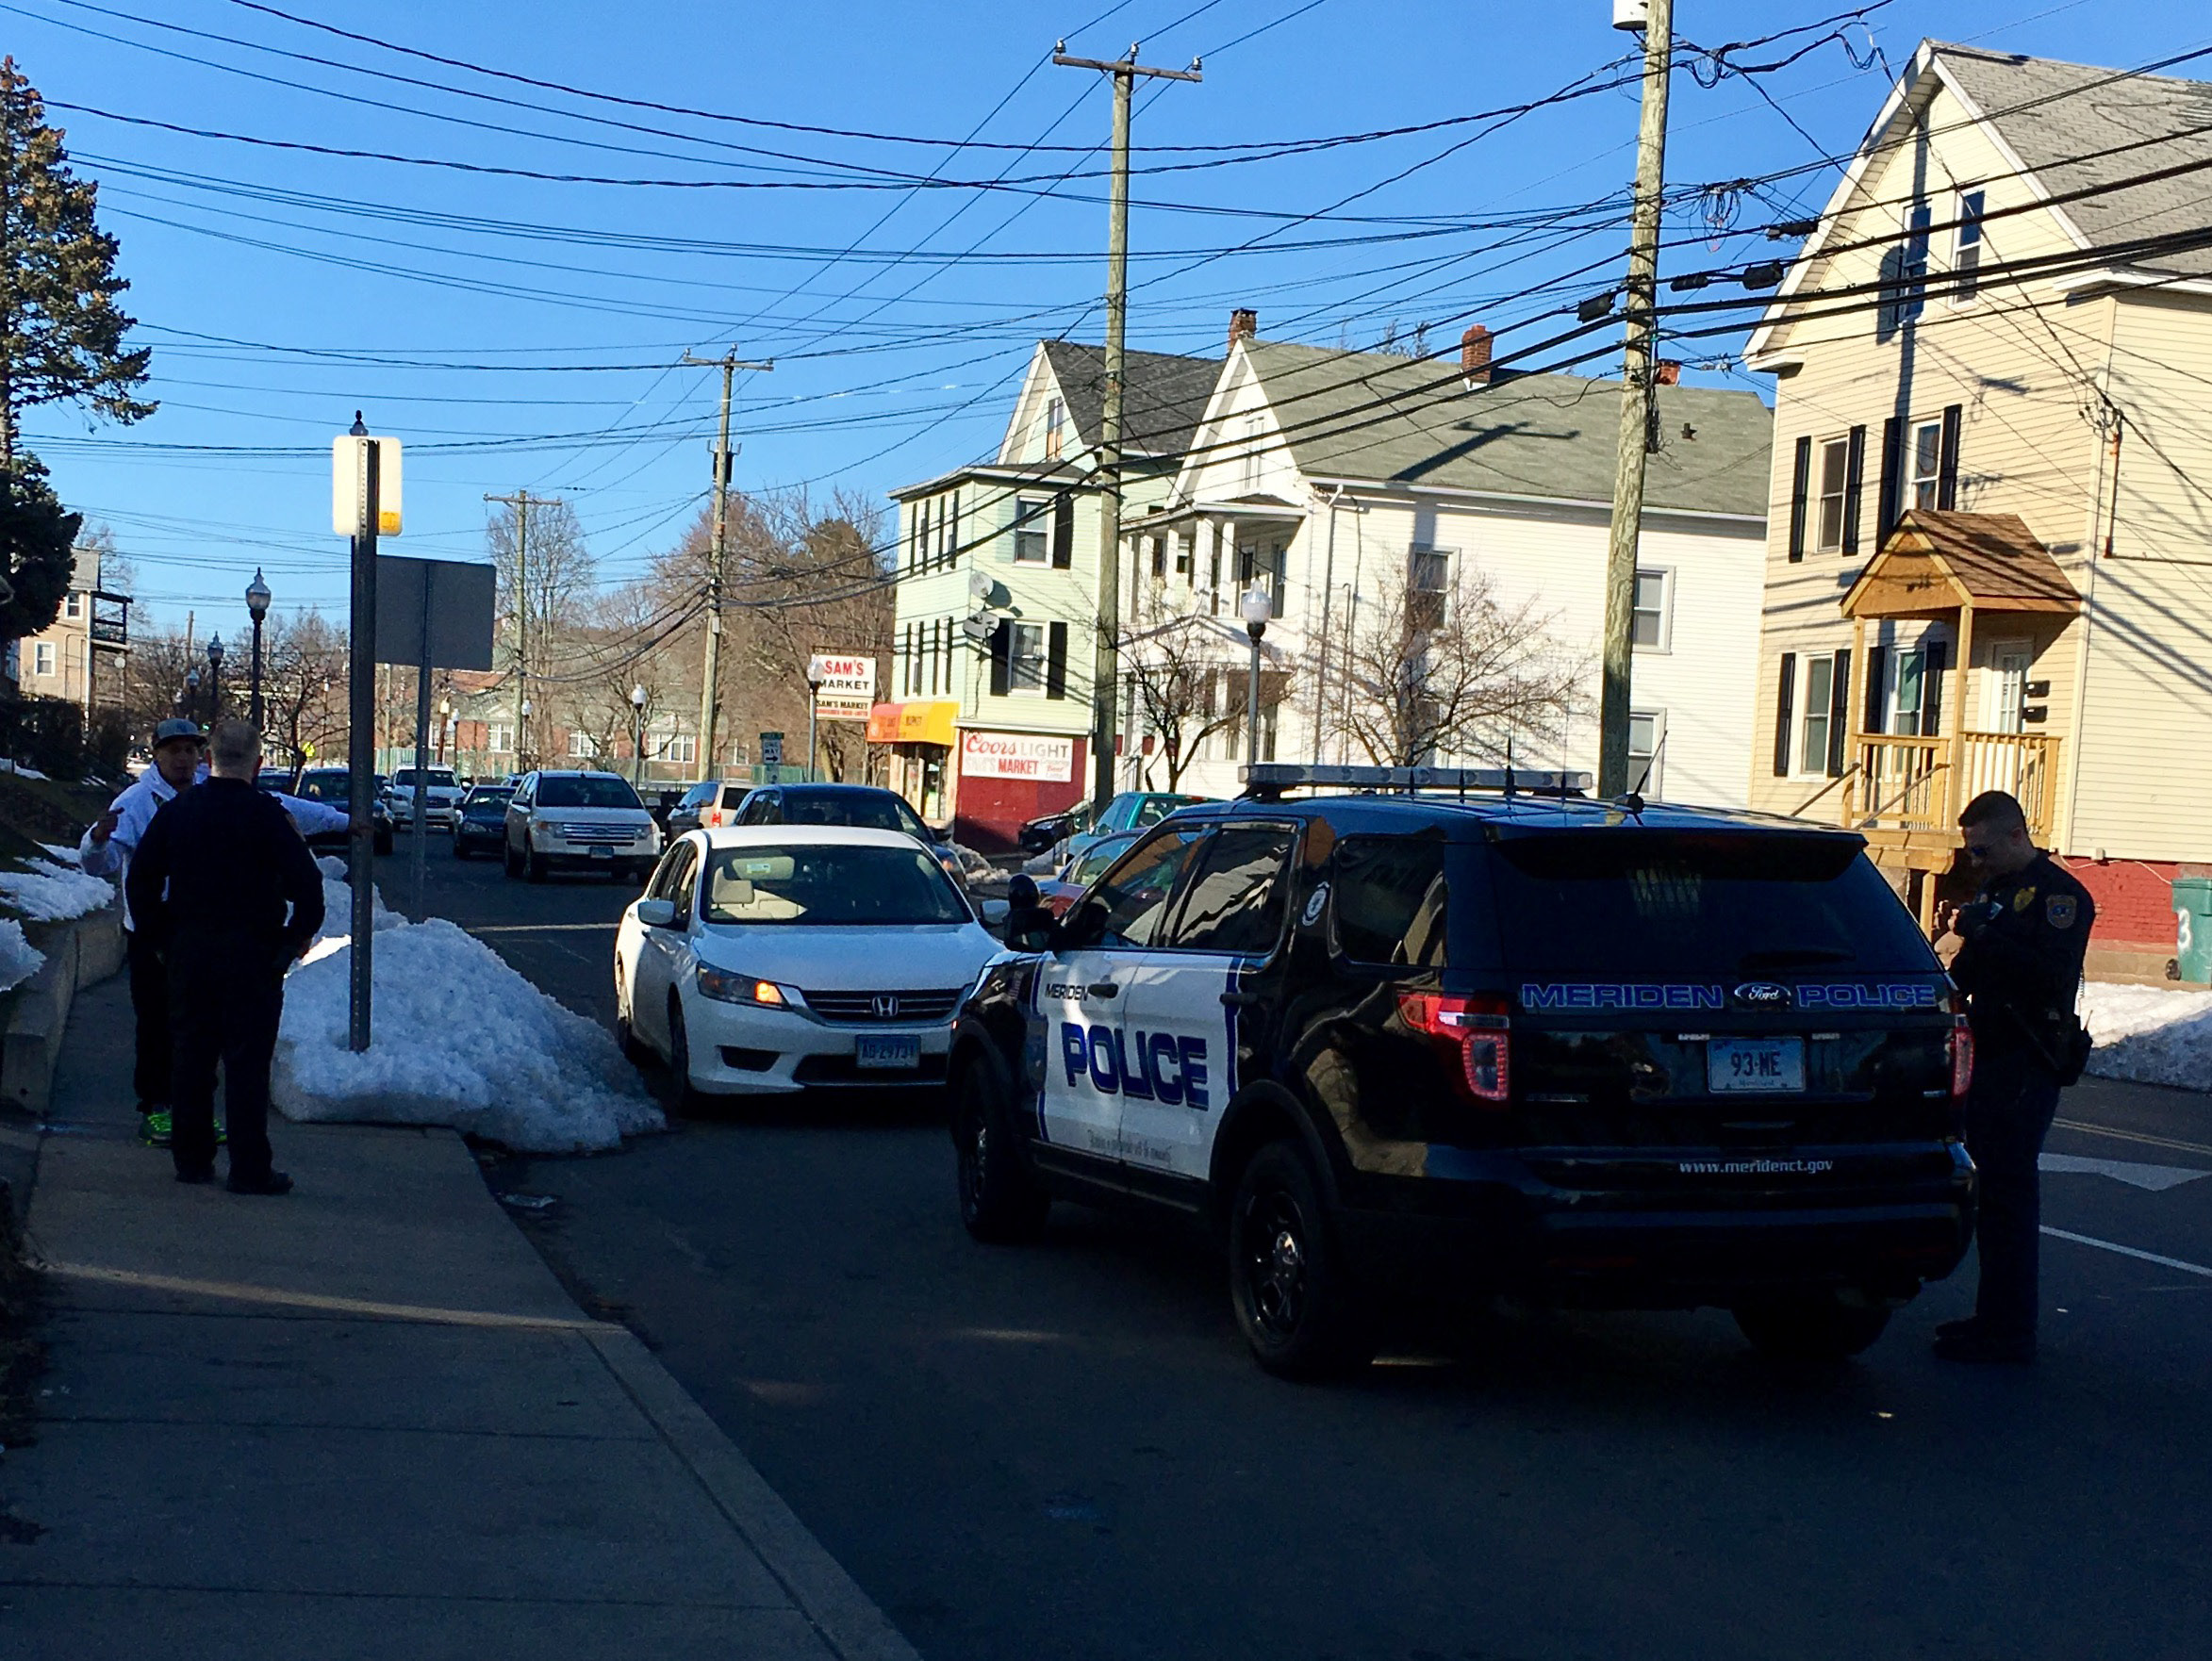 Police respond to an incident on Lewis Avenue that was initially reported as a pedestrian struck on Thursday, March 23, 2017. | Lauren Takores, Record-Journal staff